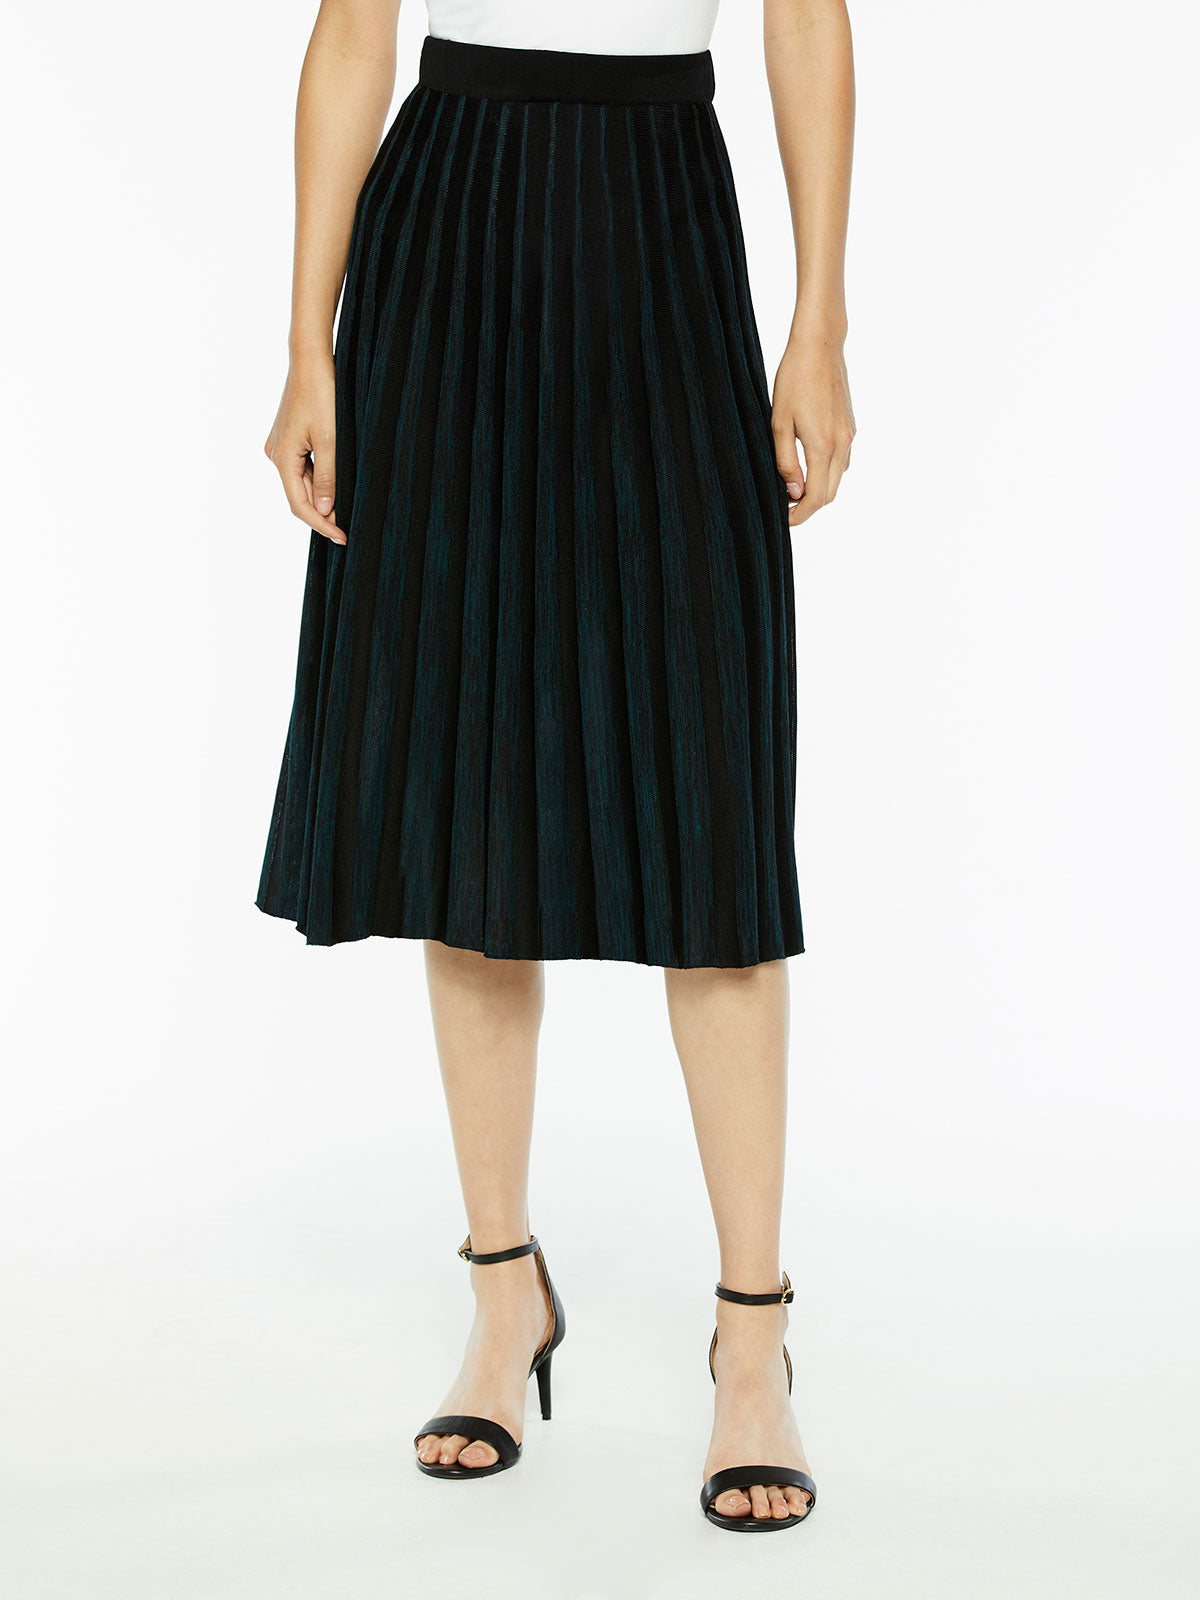 Crystal Pleated Knit A-Line Midi Skirt